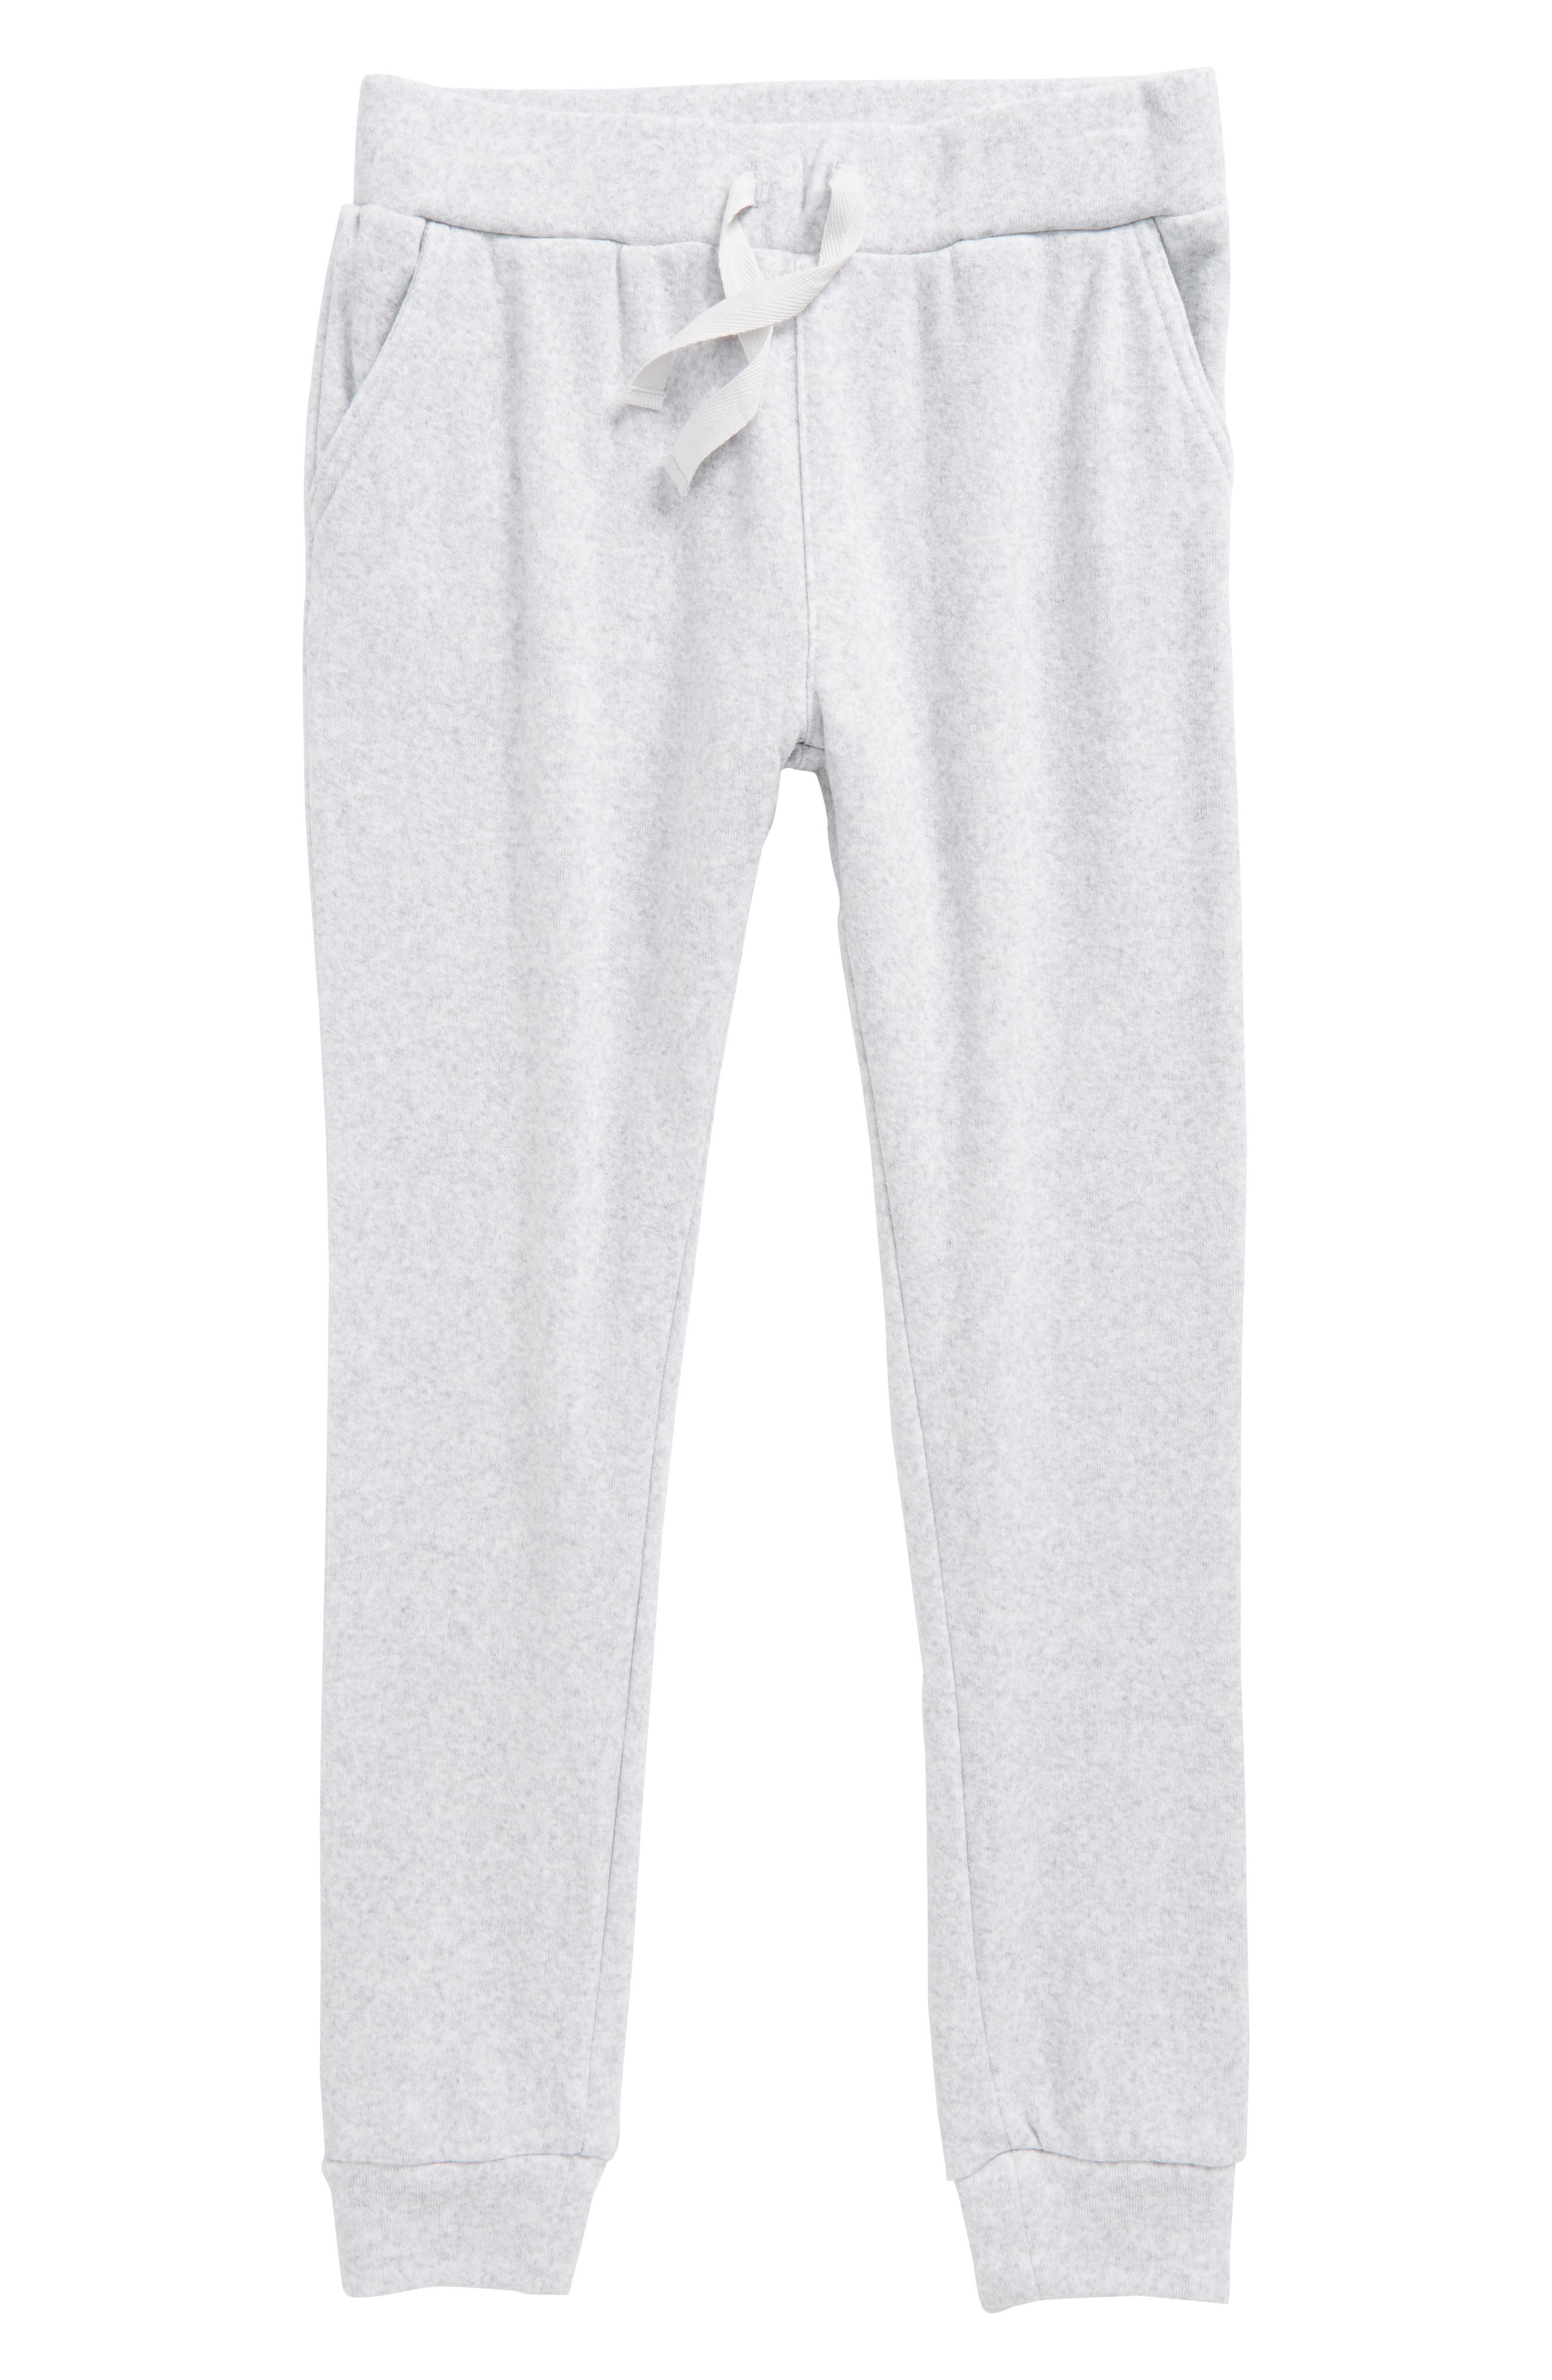 Tucker + Tate French Terry Jogger Pants (Big Girls)